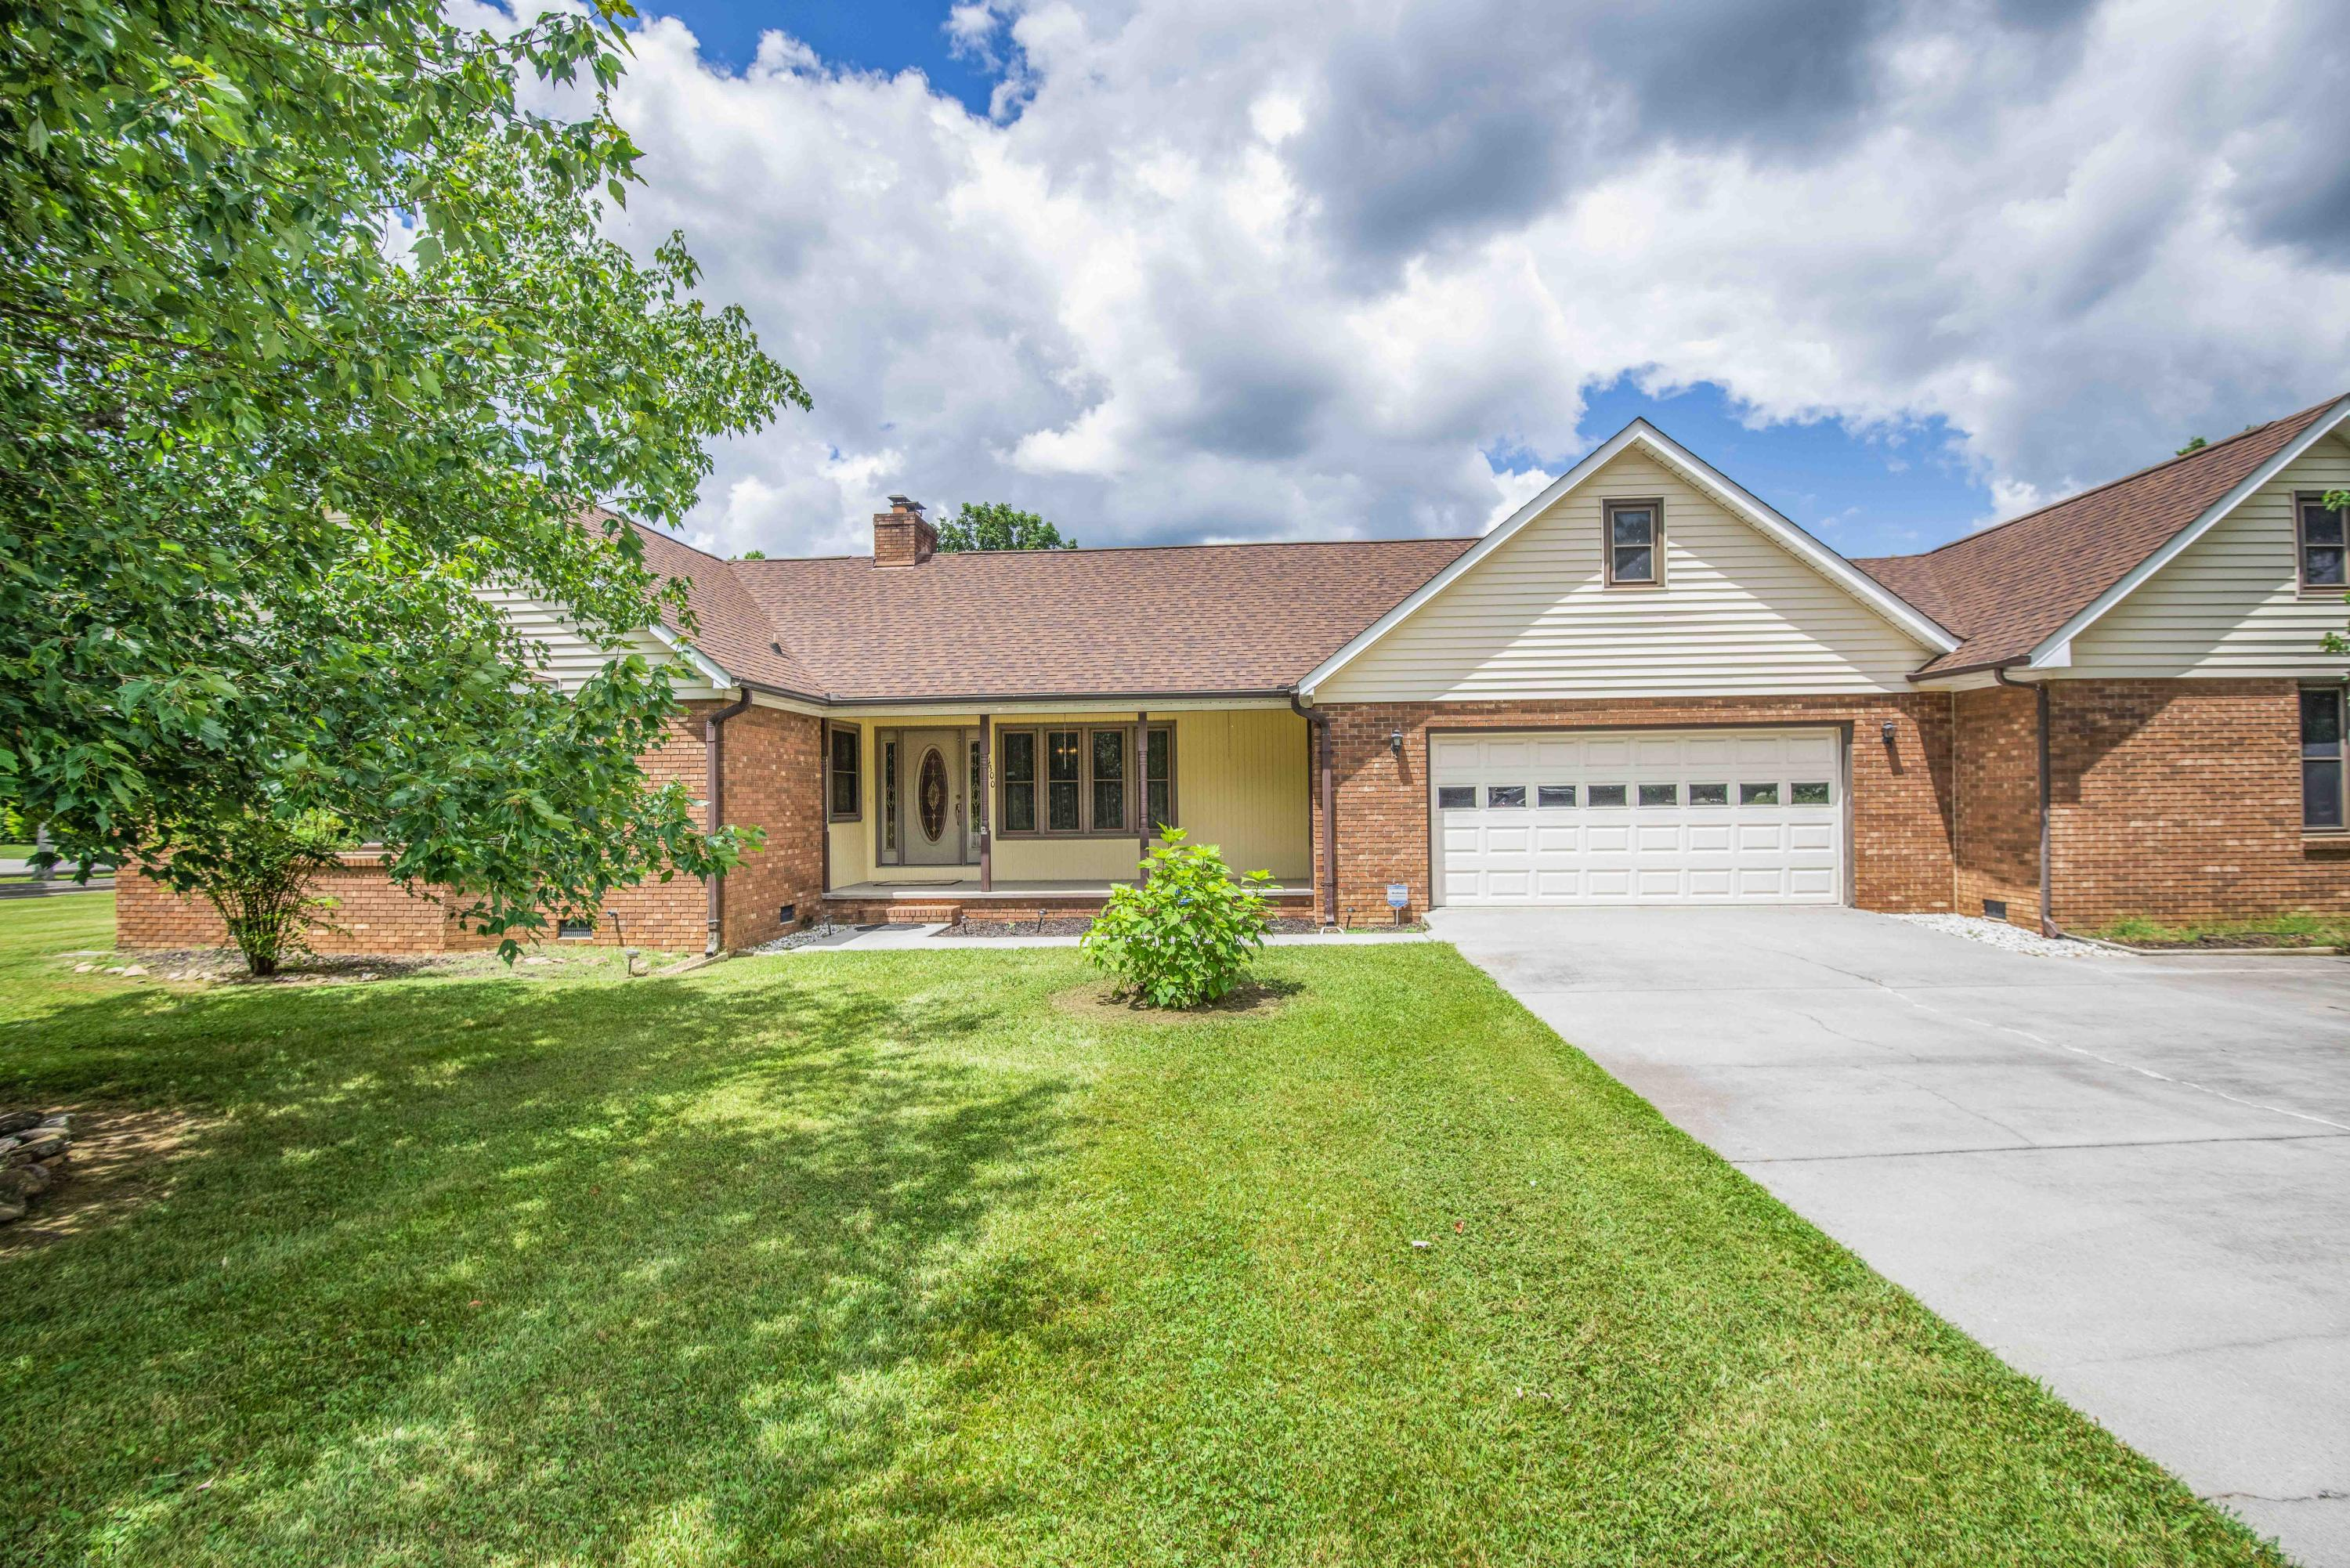 1300 Beechview Drive Drive, Sevierville, Tennessee 37862, 5 Bedrooms Bedrooms, ,2 BathroomsBathrooms,Single Family,For Sale,Beechview Drive,1120744